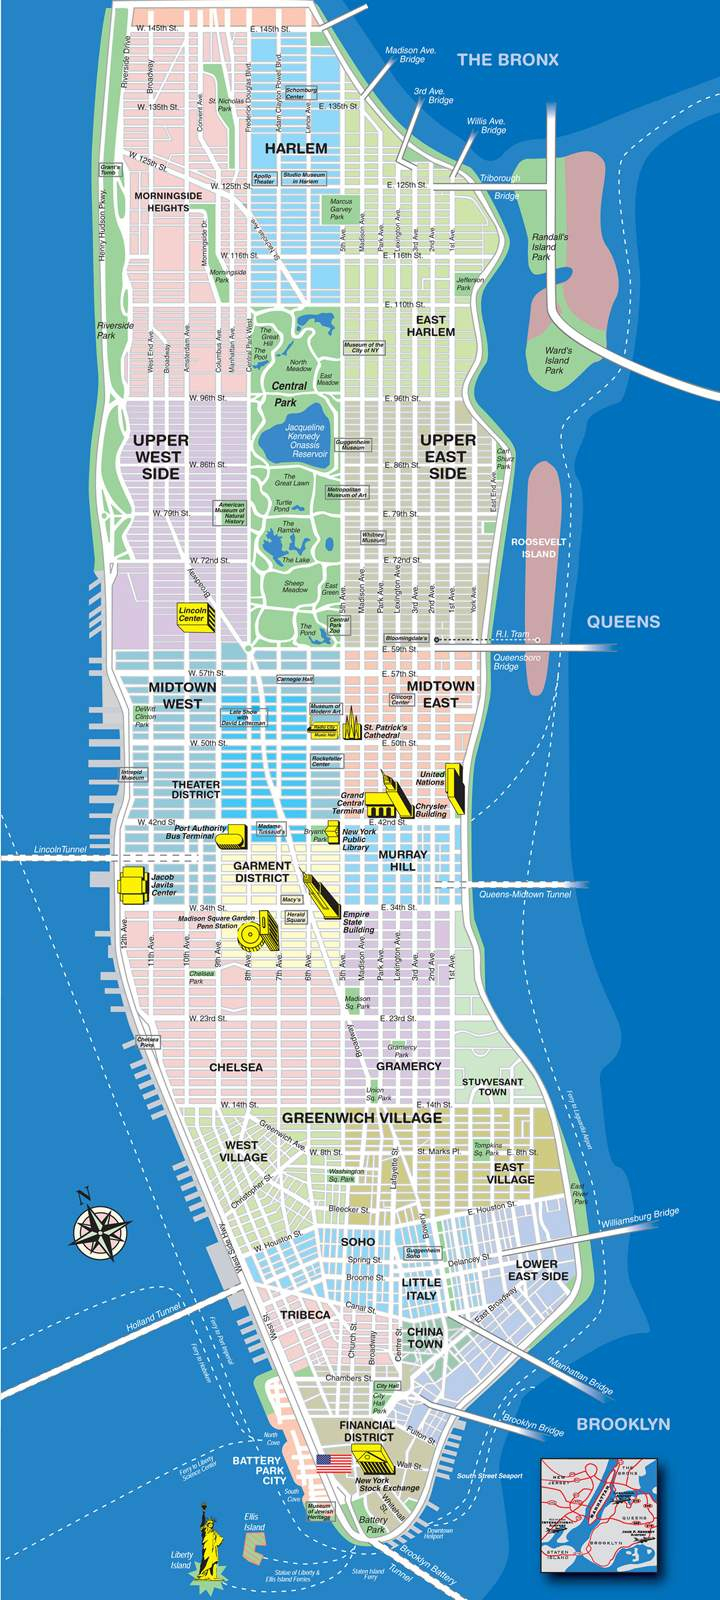 Large Manhattan Maps For Free Download And Print | High-Resolution - Printable Walking Map Of Midtown Manhattan